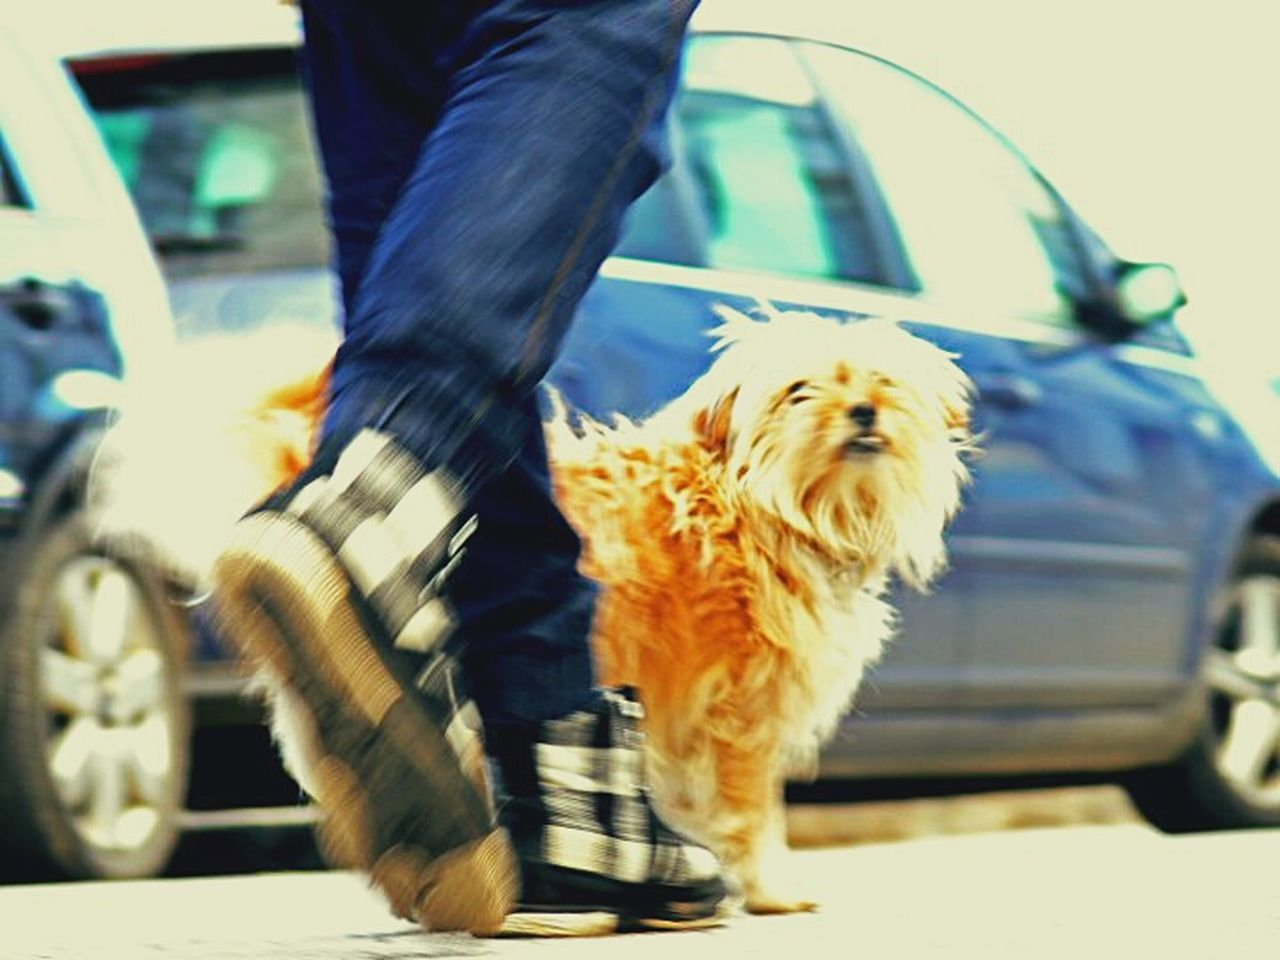 low section, human leg, blurred motion, motion, dog, pets, one person, one animal, transportation, car, walking, human body part, shoe, domestic animals, day, outdoors, real people, road, men, lifestyles, one man only, mammal, close-up, adult, people, adults only